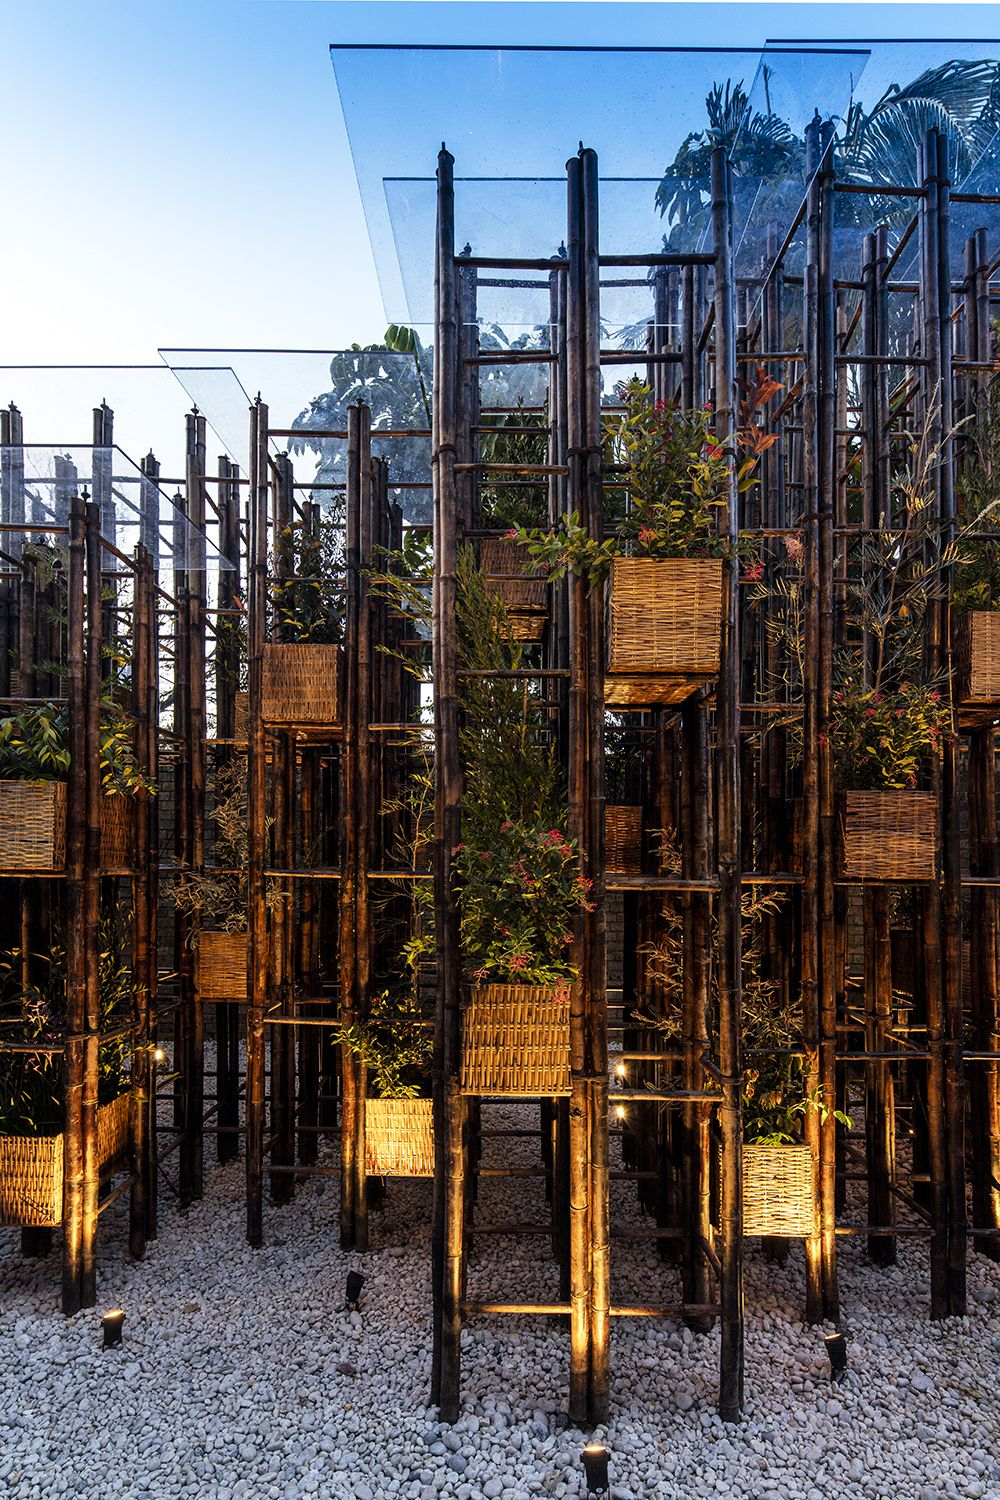 Vo Trong Nghia uses bamboo ladders to build pavilion at